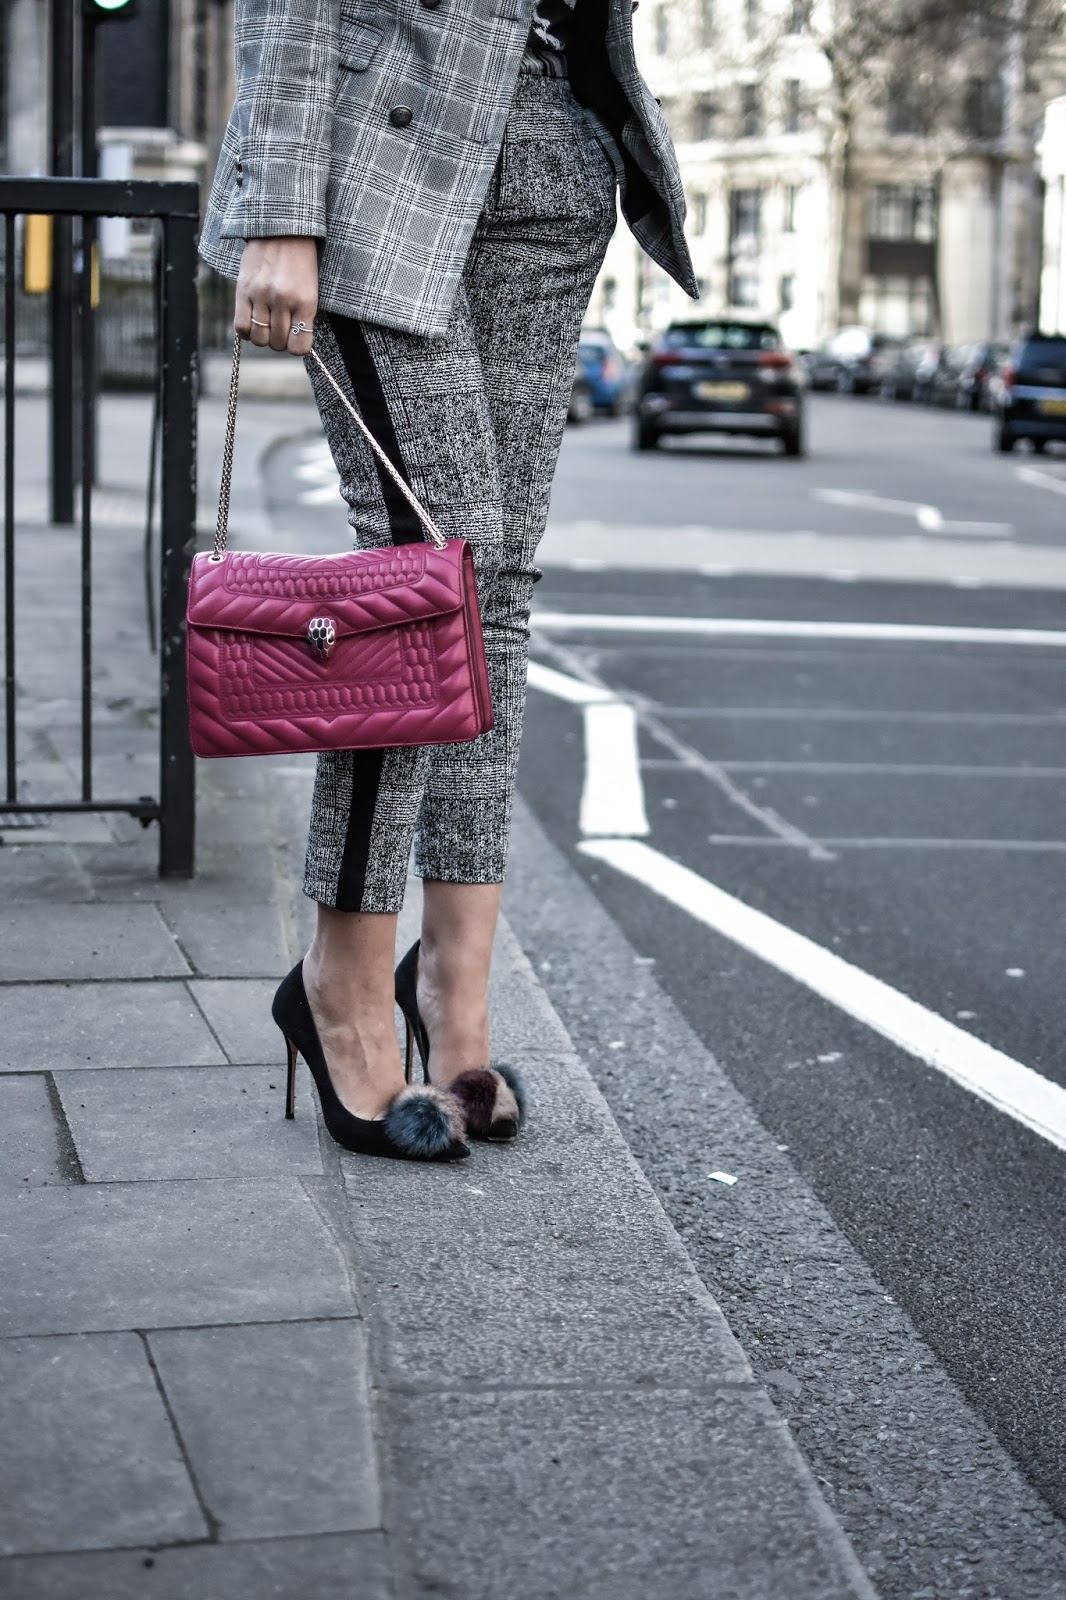 el-blog-de-silvia-rodriguez-street-style-lfw-london-fashion-week-suit-traje-masculino-bulgari-bolso-blogger-influencer (15)